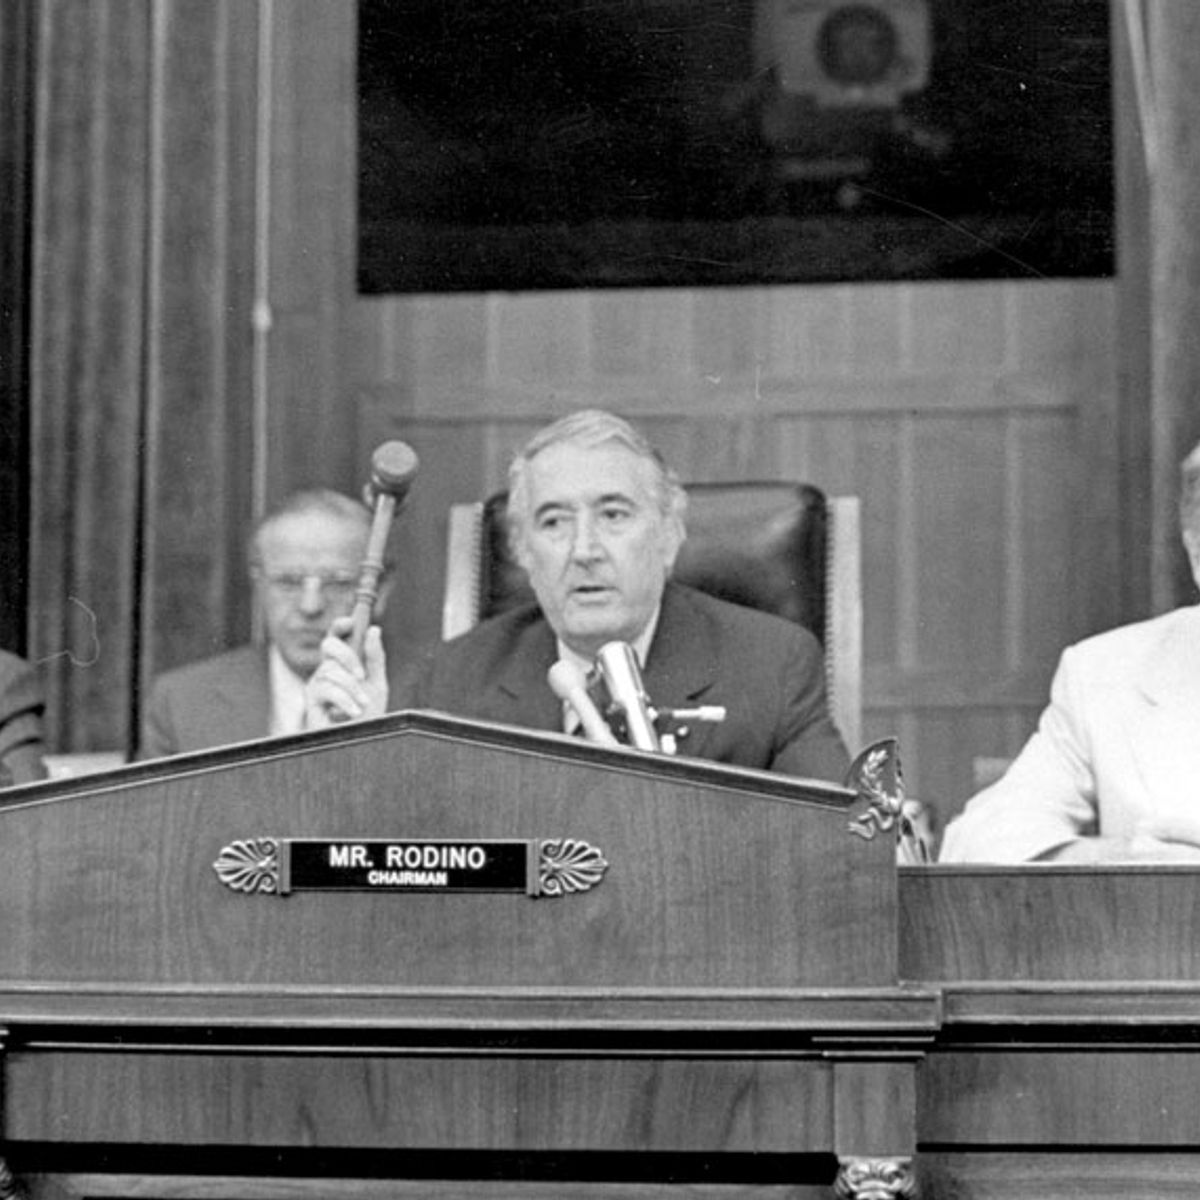 How an impeachment unfolds: Inside the 1974 Nixon hearings, day by day